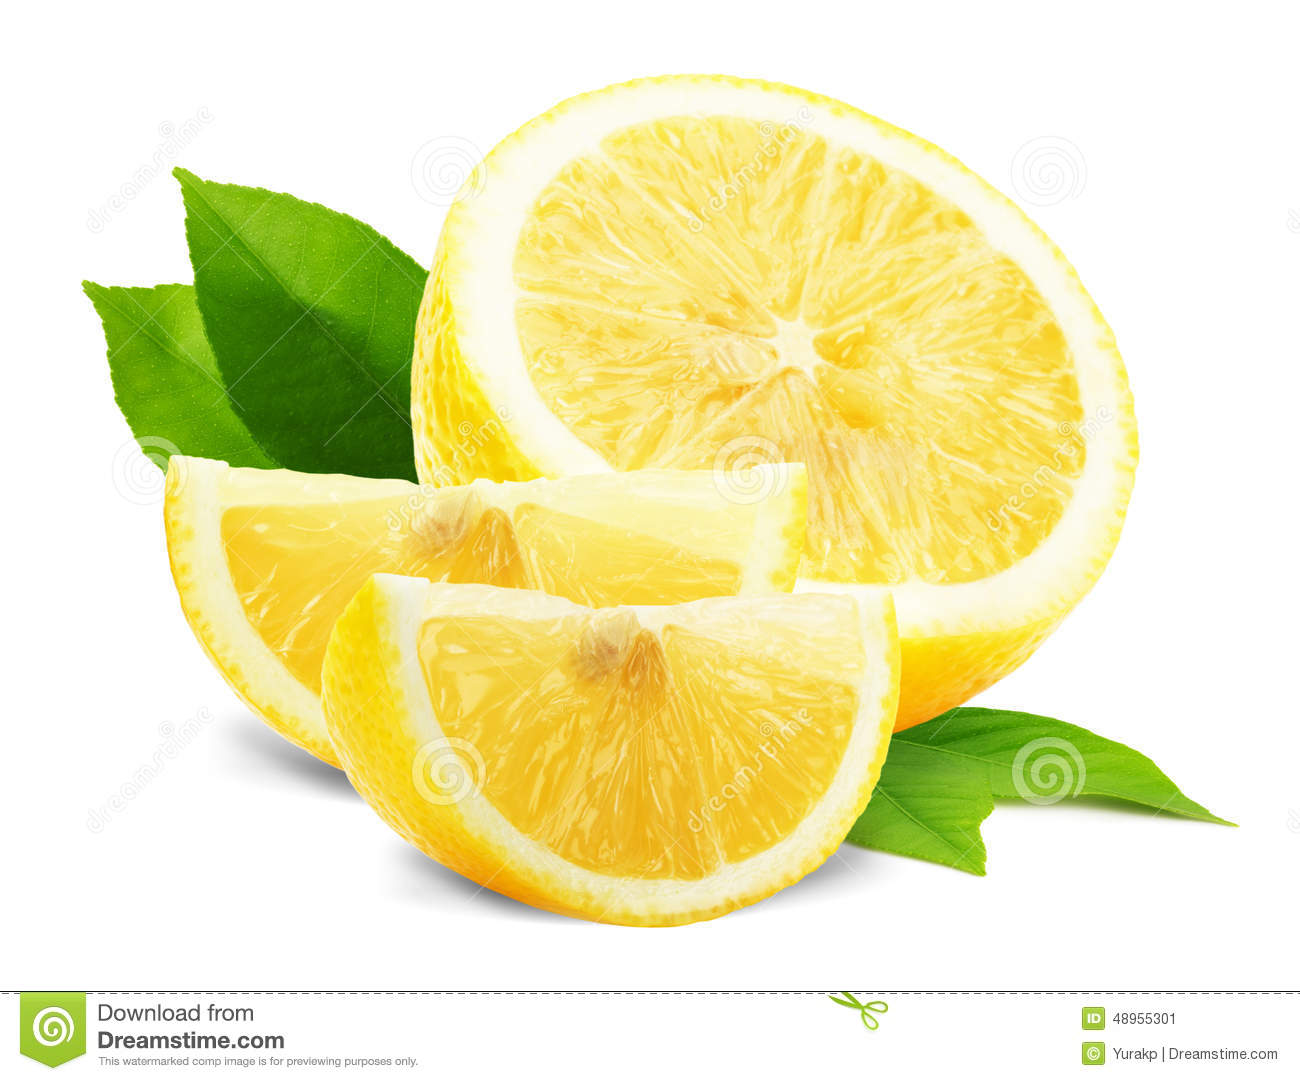 Lemon slices with leaves isolated on the white background